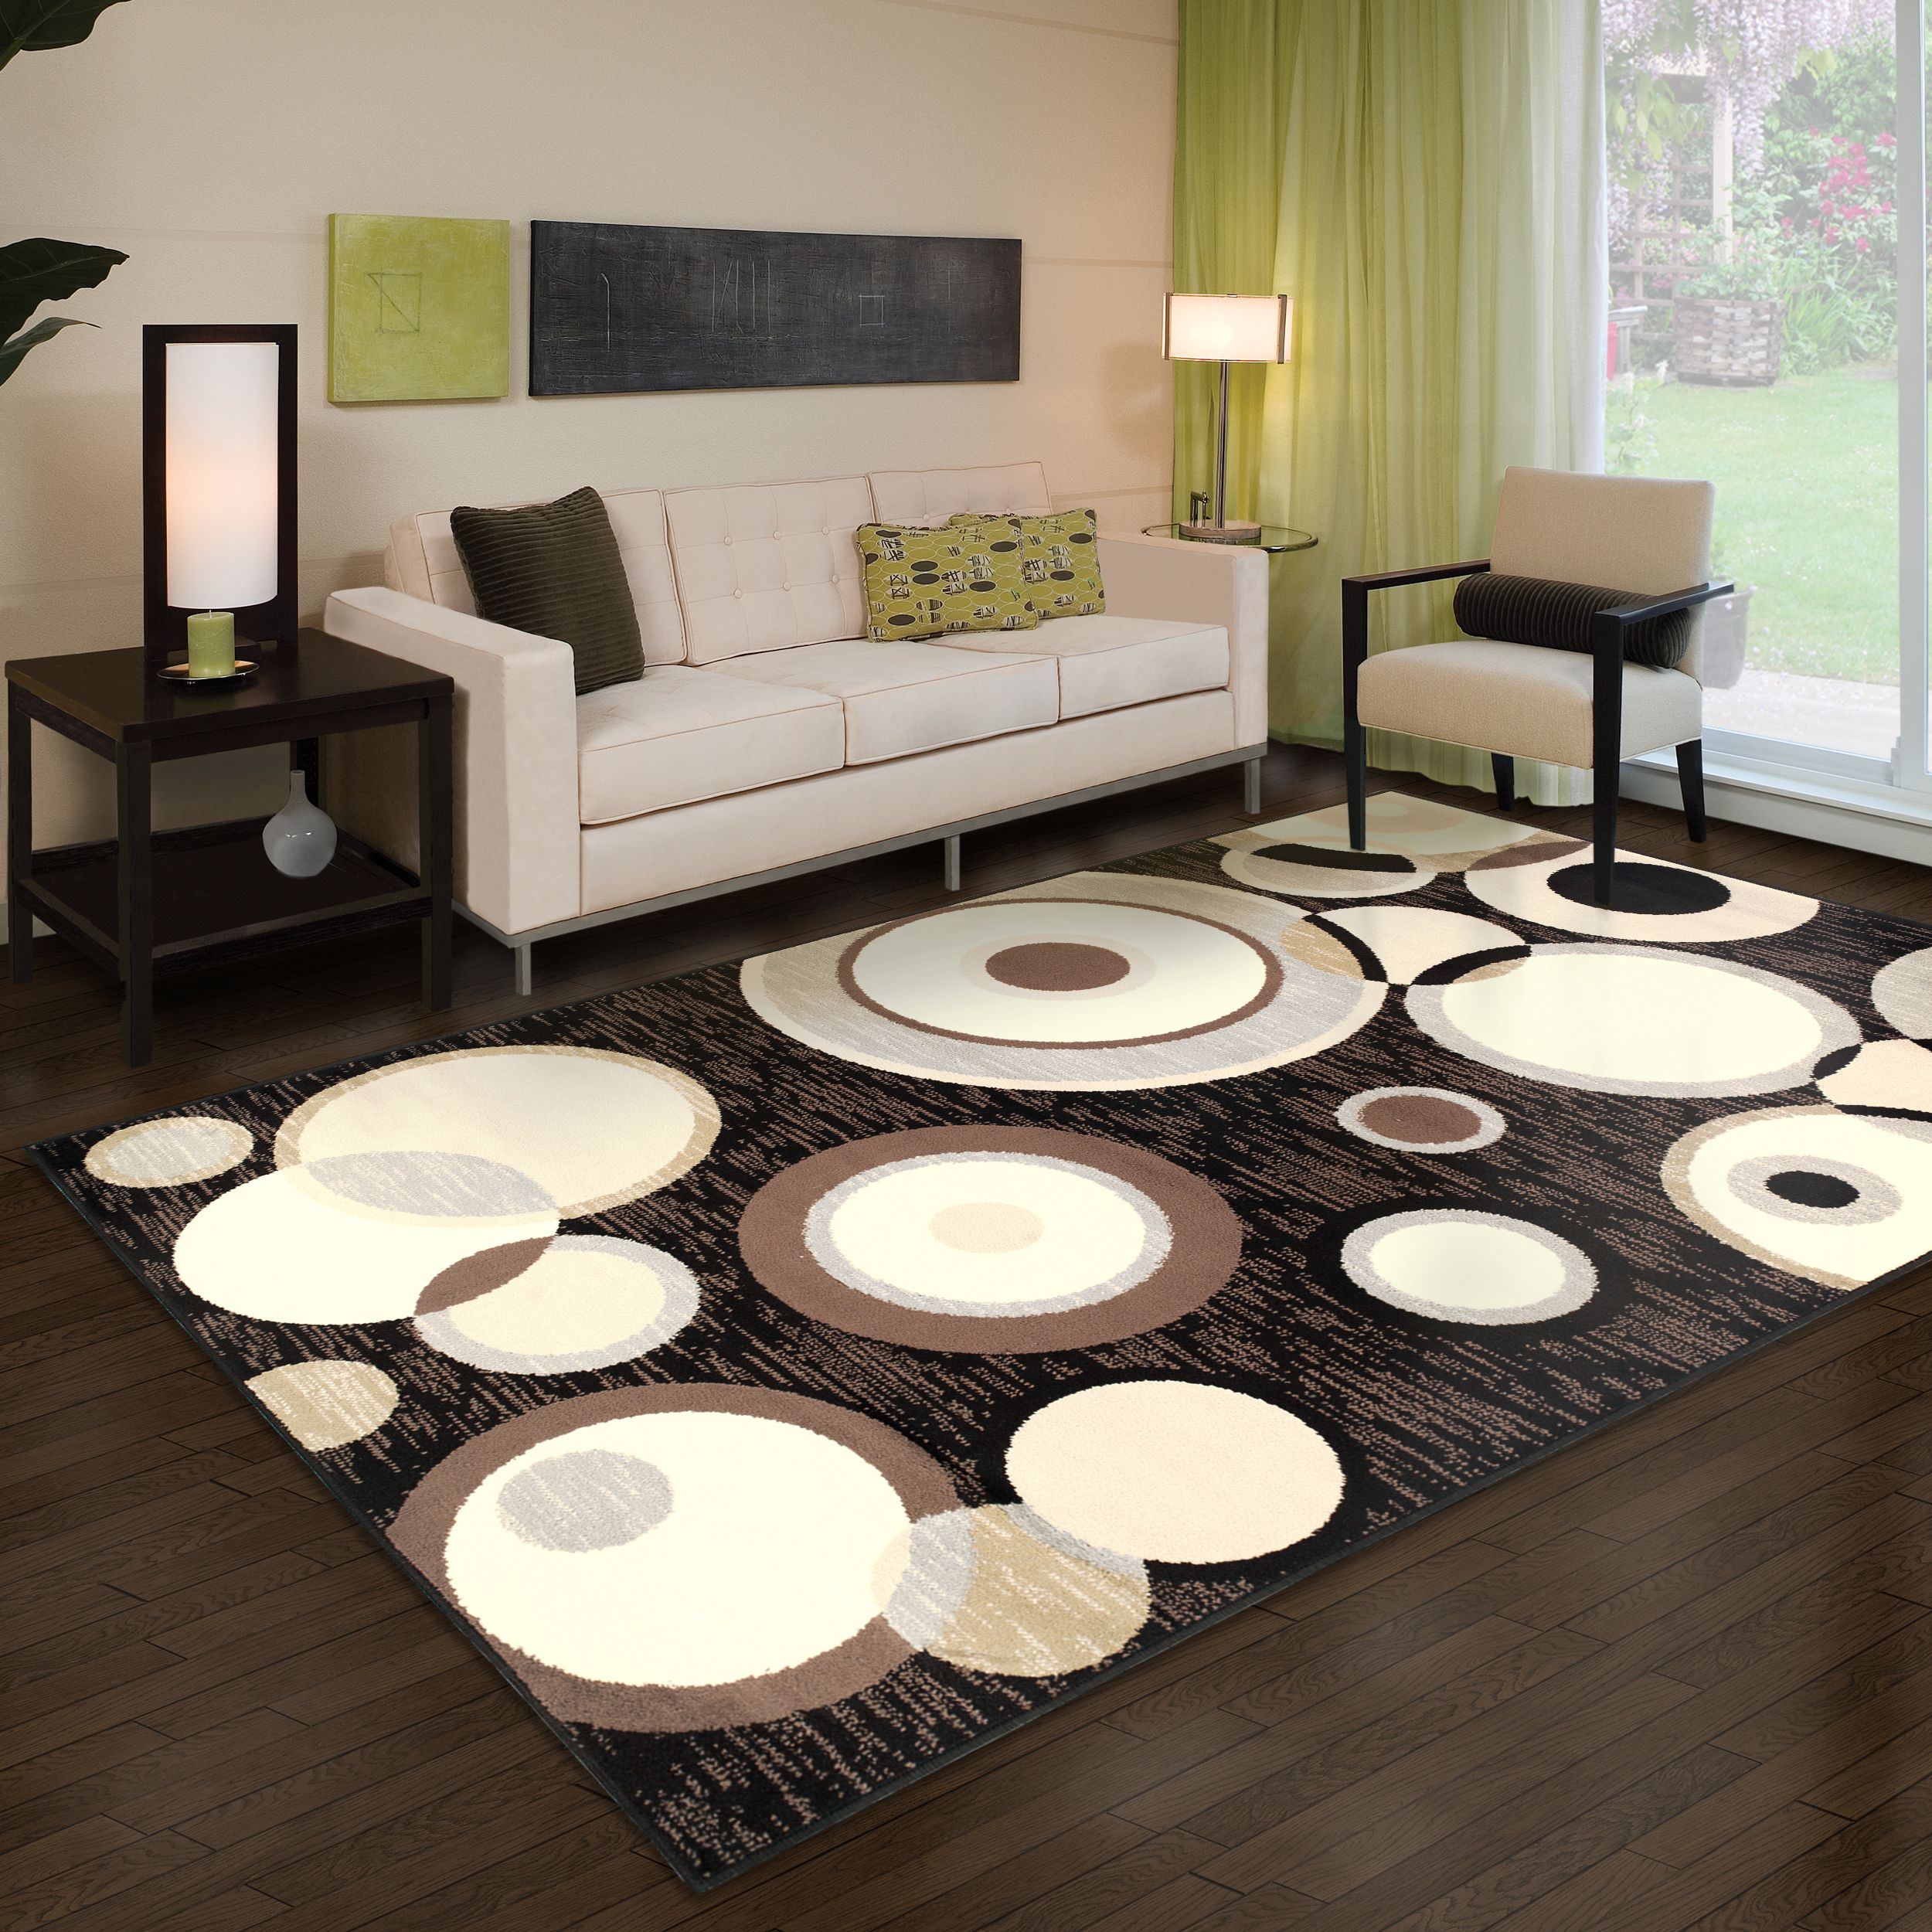 Superior Modern Ringoes Collection with 8mm Pile and Jute Backing, Moisture Resistant and Anti-Static Indoor Area Rug